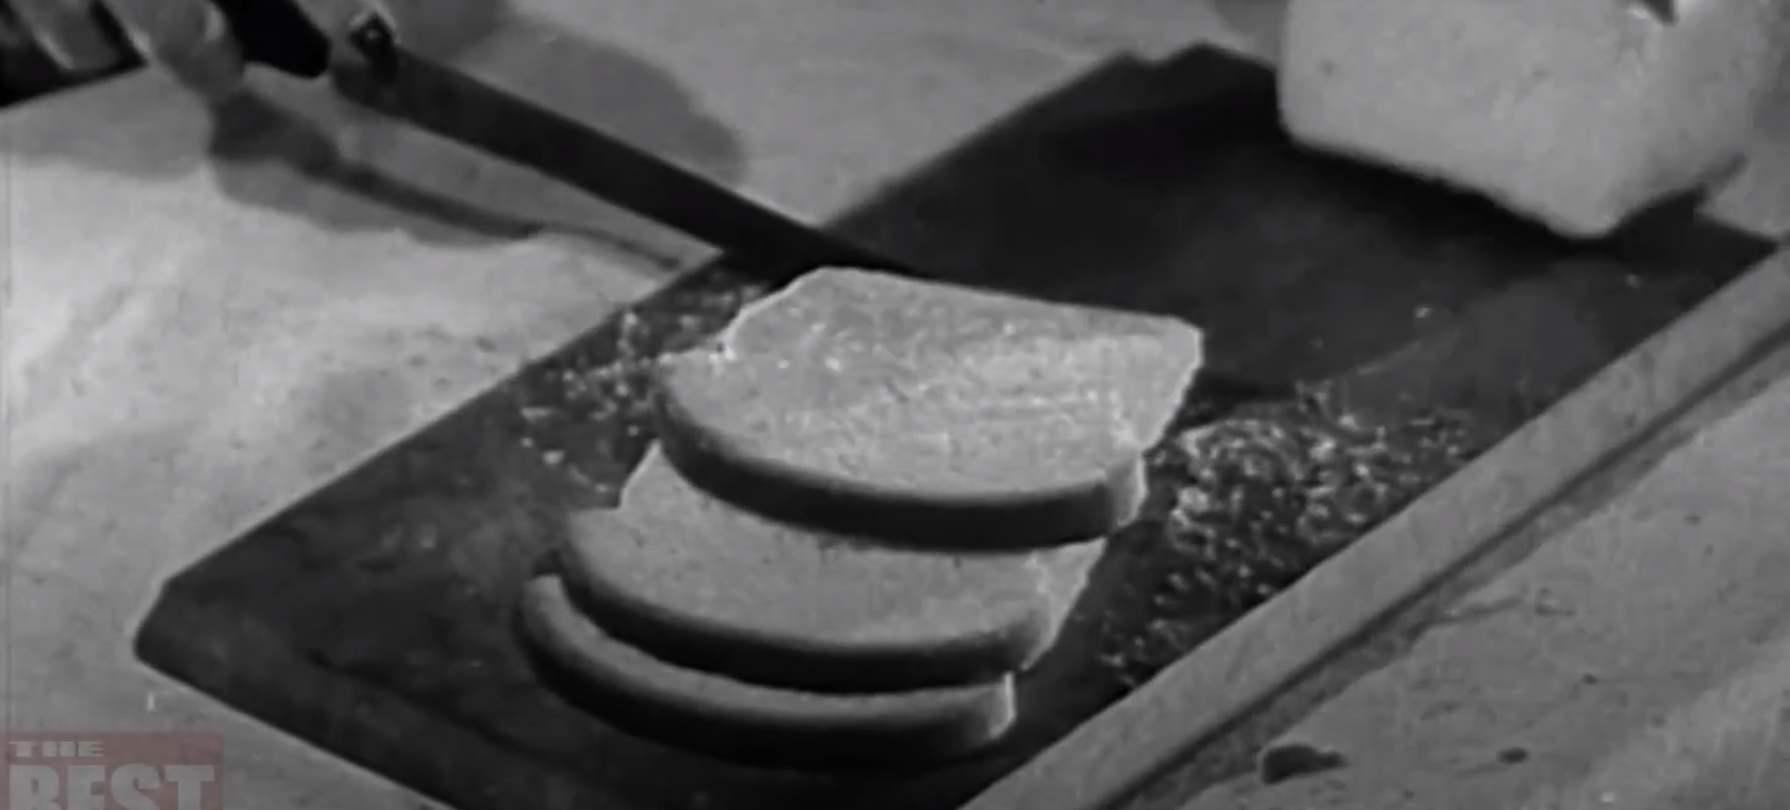 How Bread Was Made in the 1940s